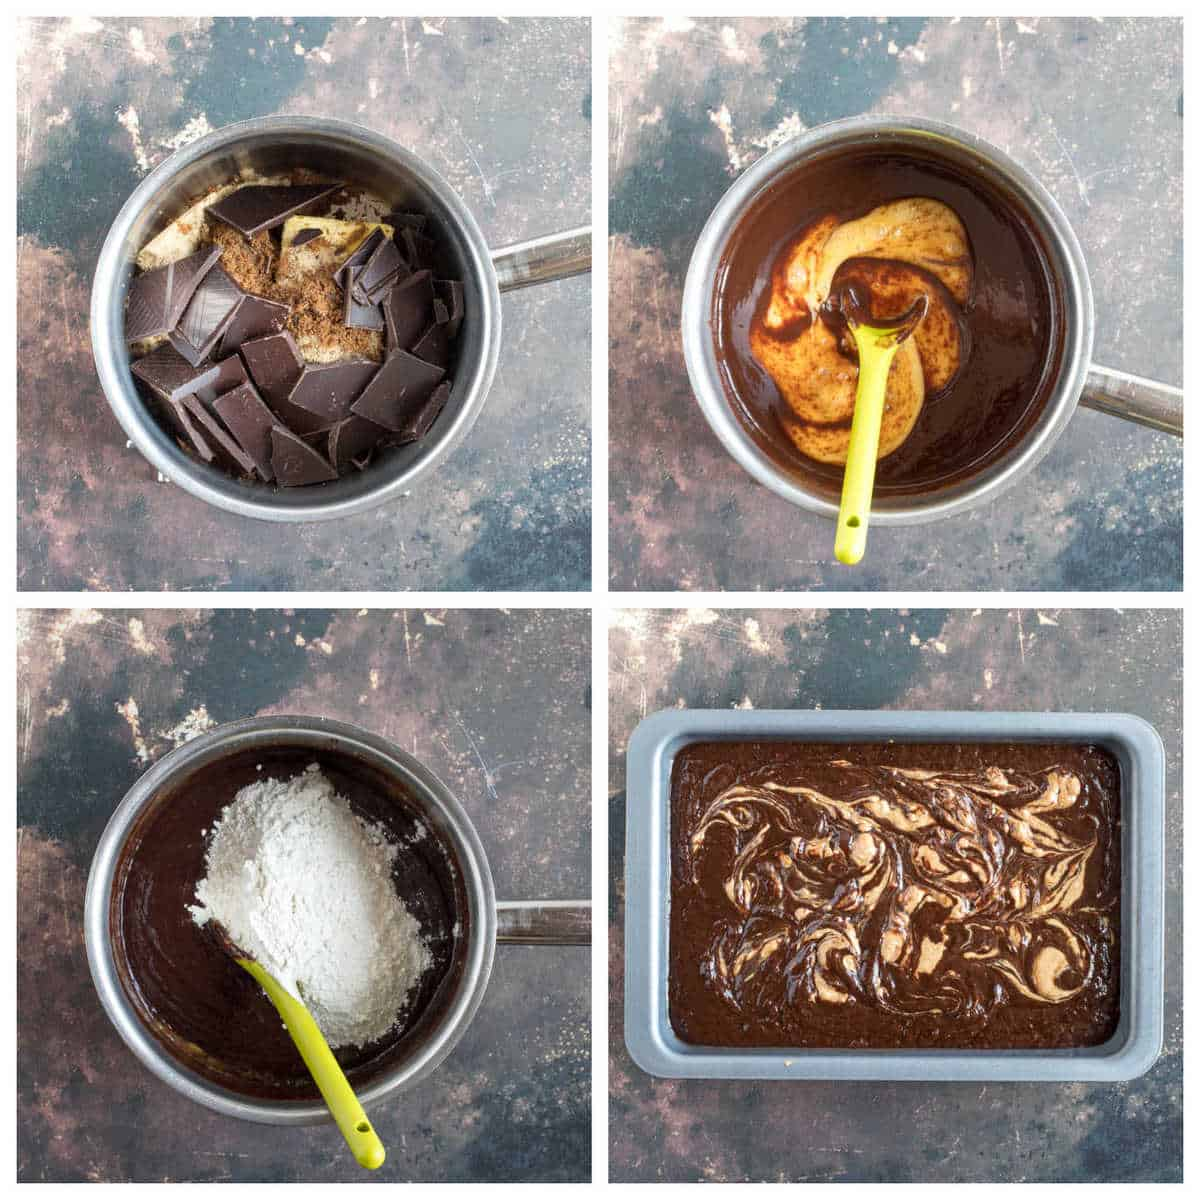 Step by step photo instructions for making the peanut butter swirl brownies.